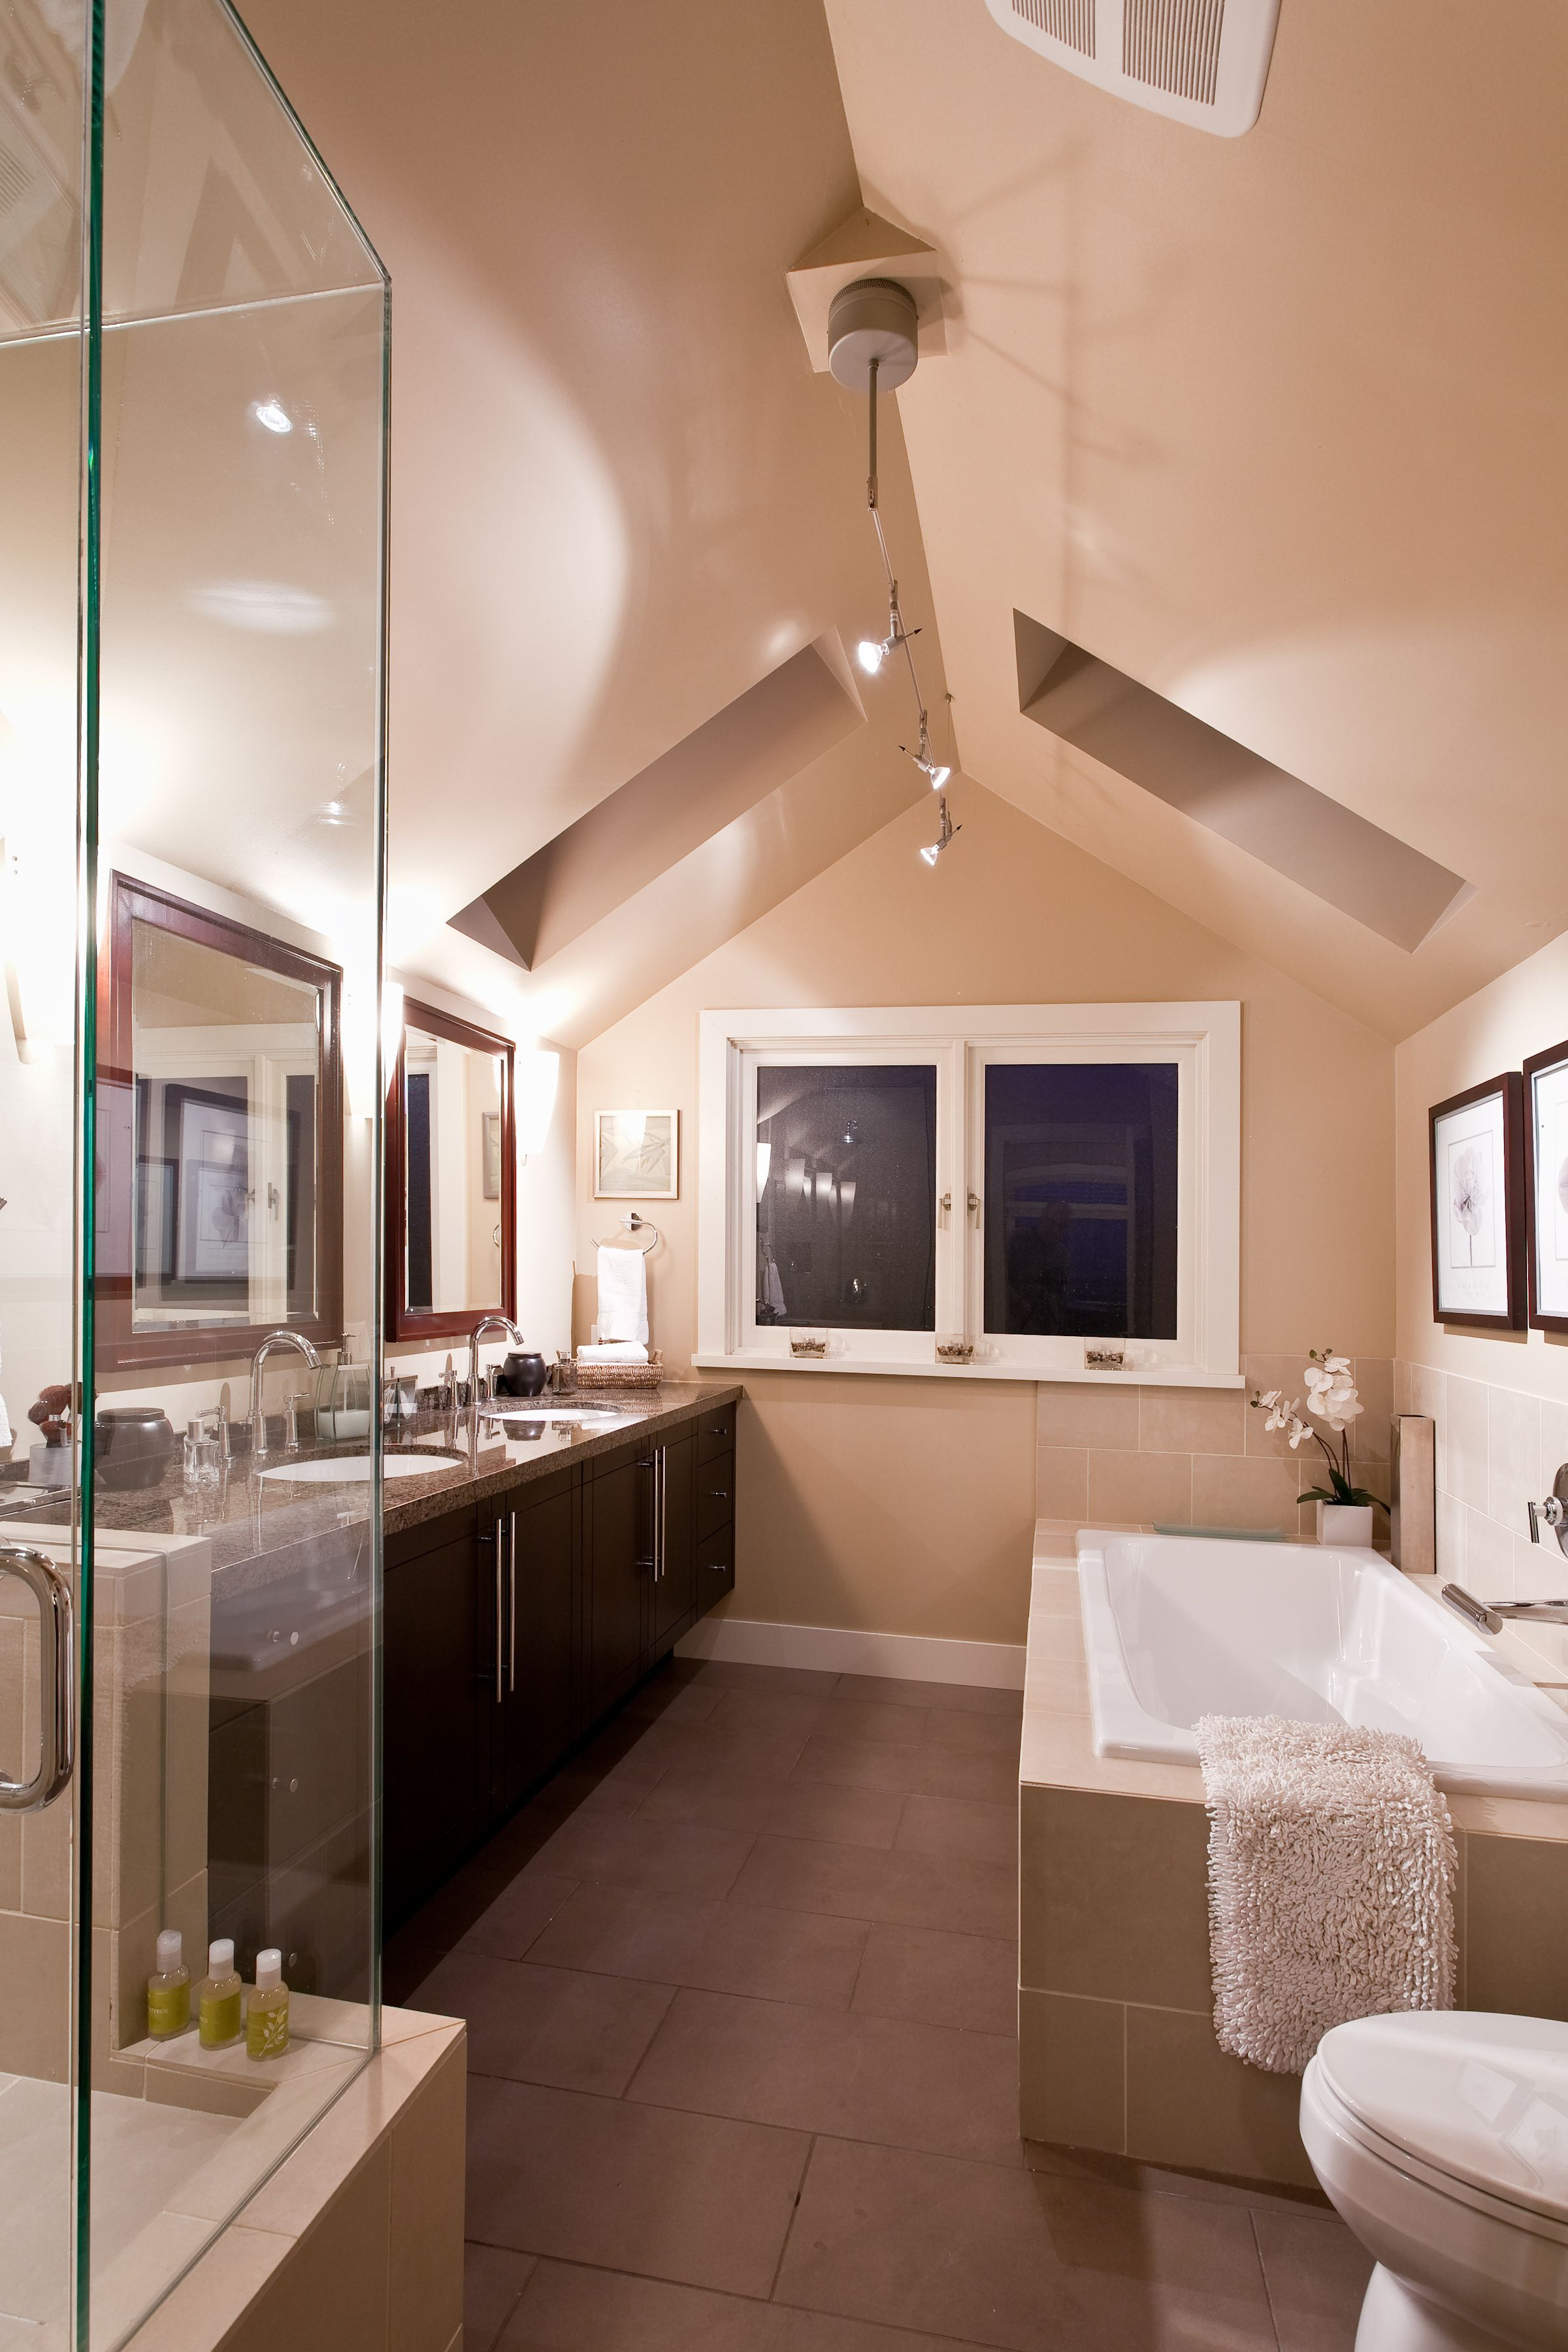 master bedroom ensuite c w vaulted ceiling and skylights 16139 | 560d7cf0a7922f8bd702b5ac216b3966